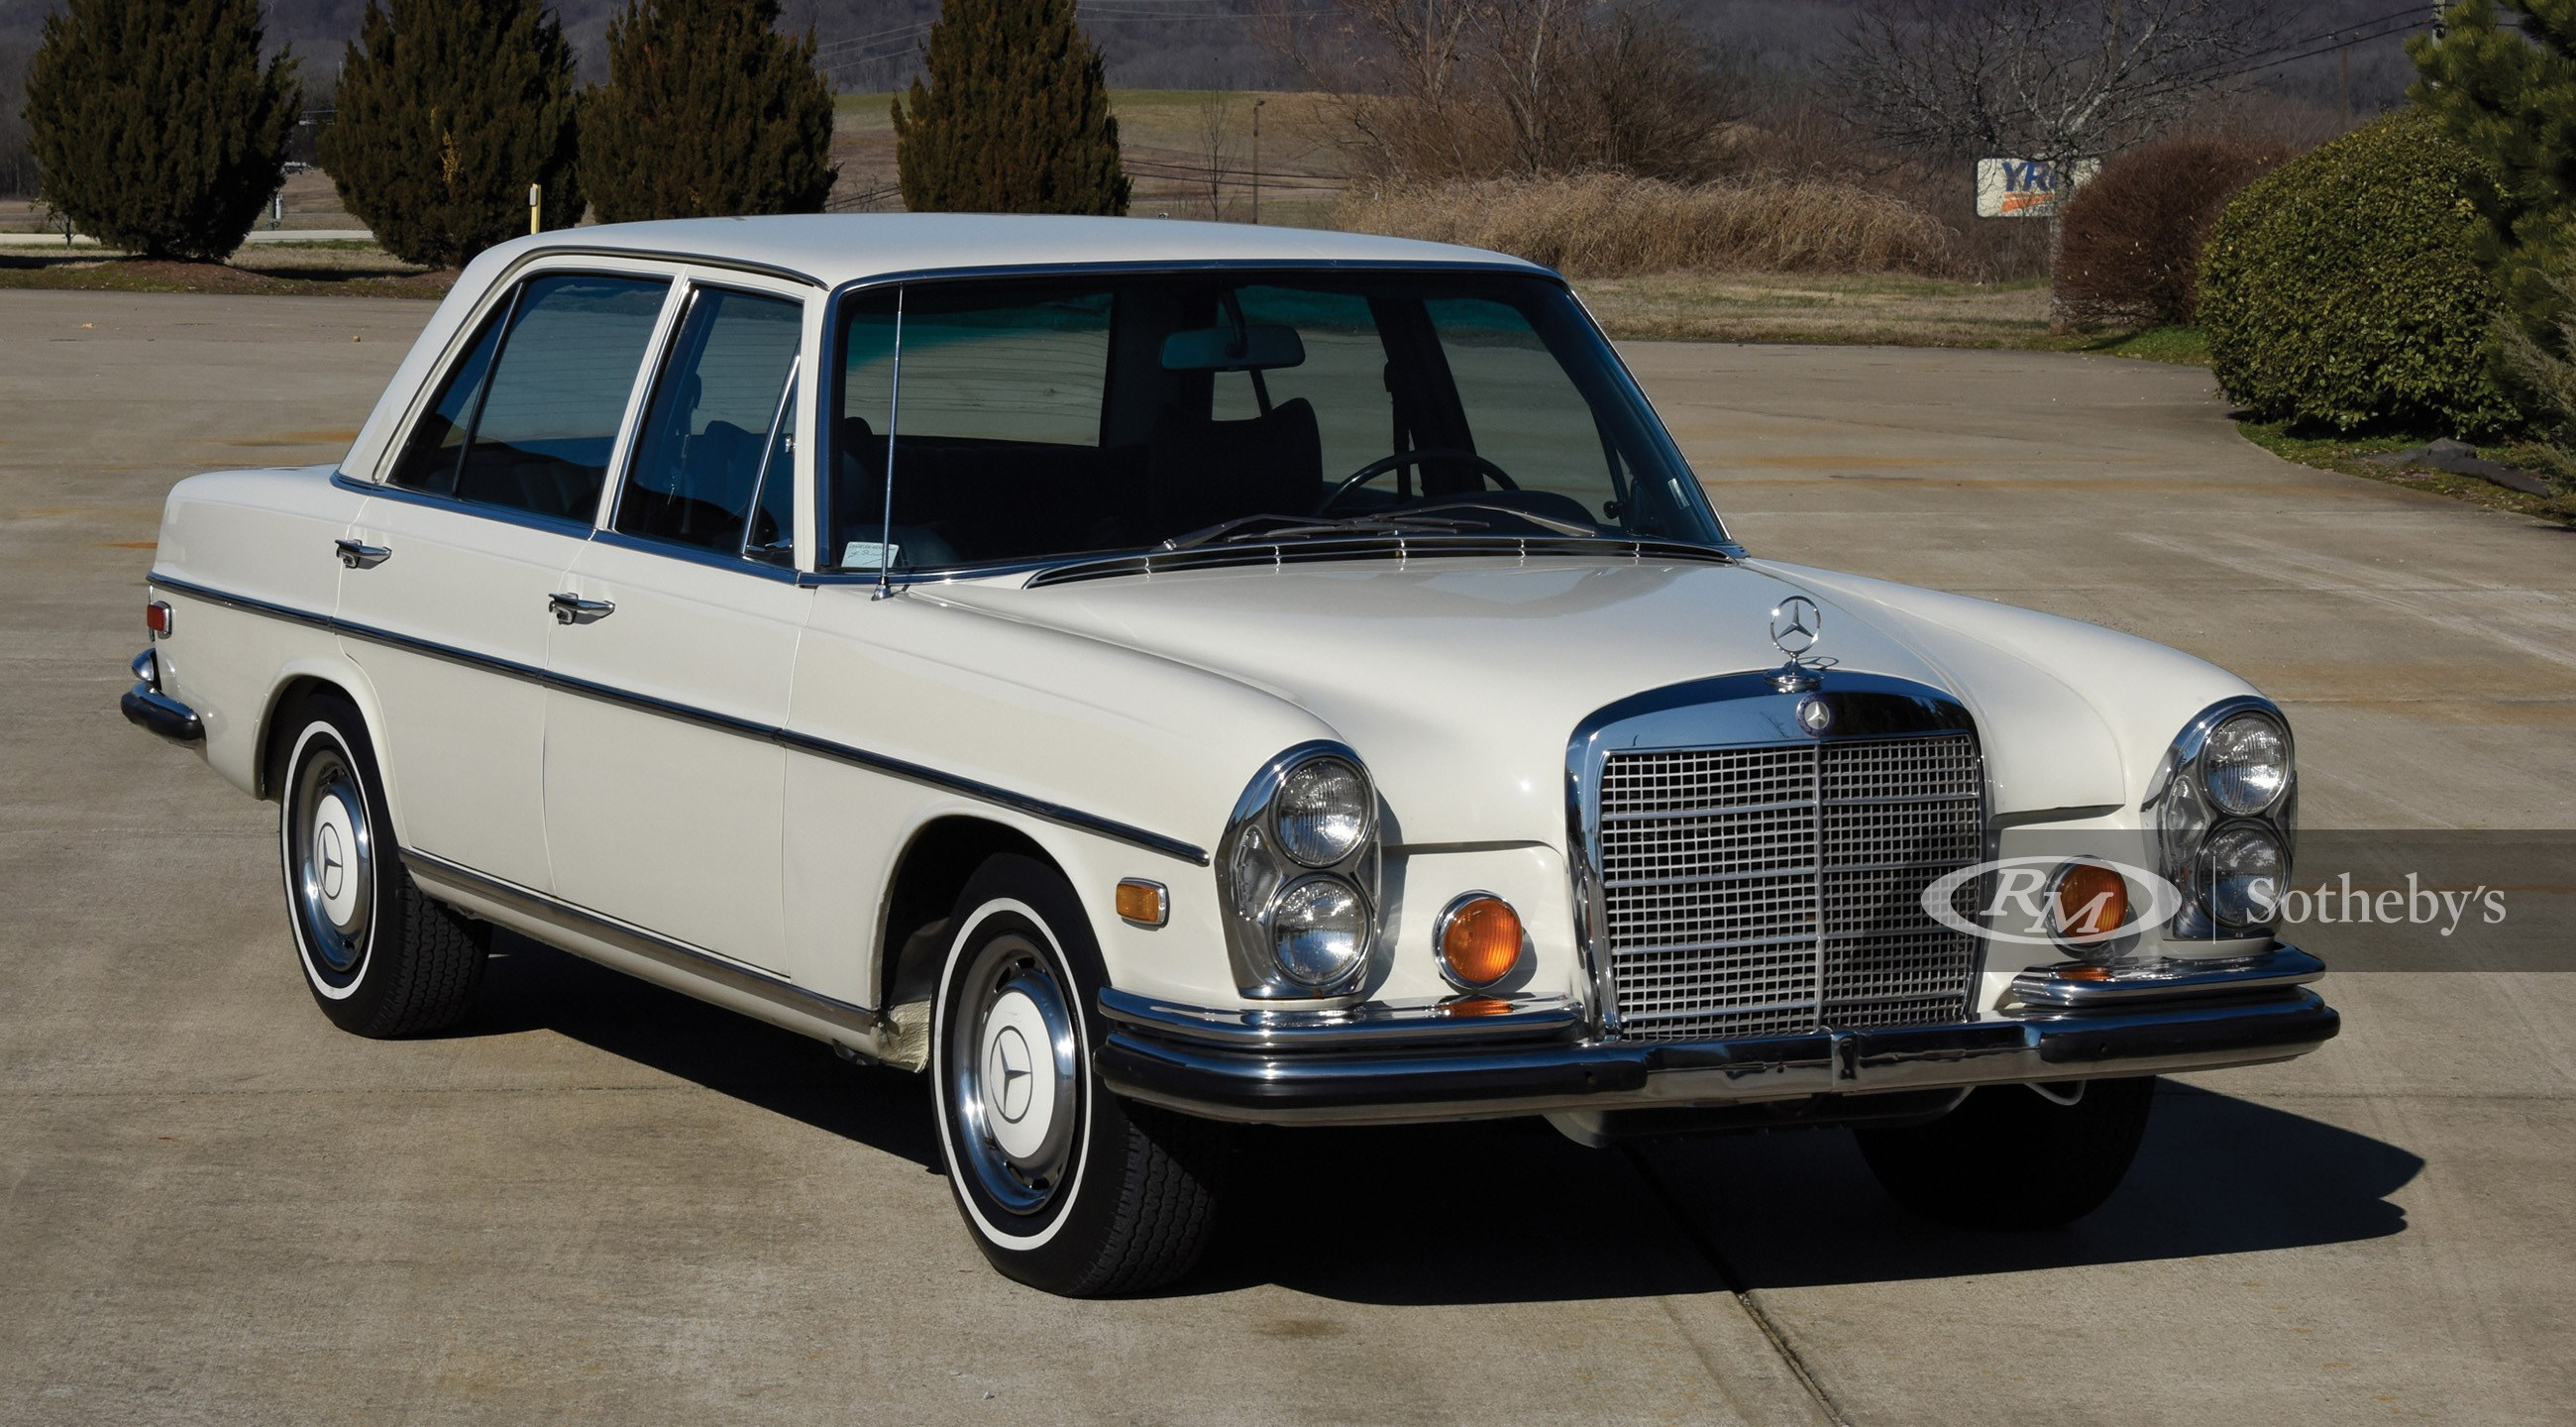 RM Sotheby's, 1973 Mercedes-Benz 280 SEL 4.5